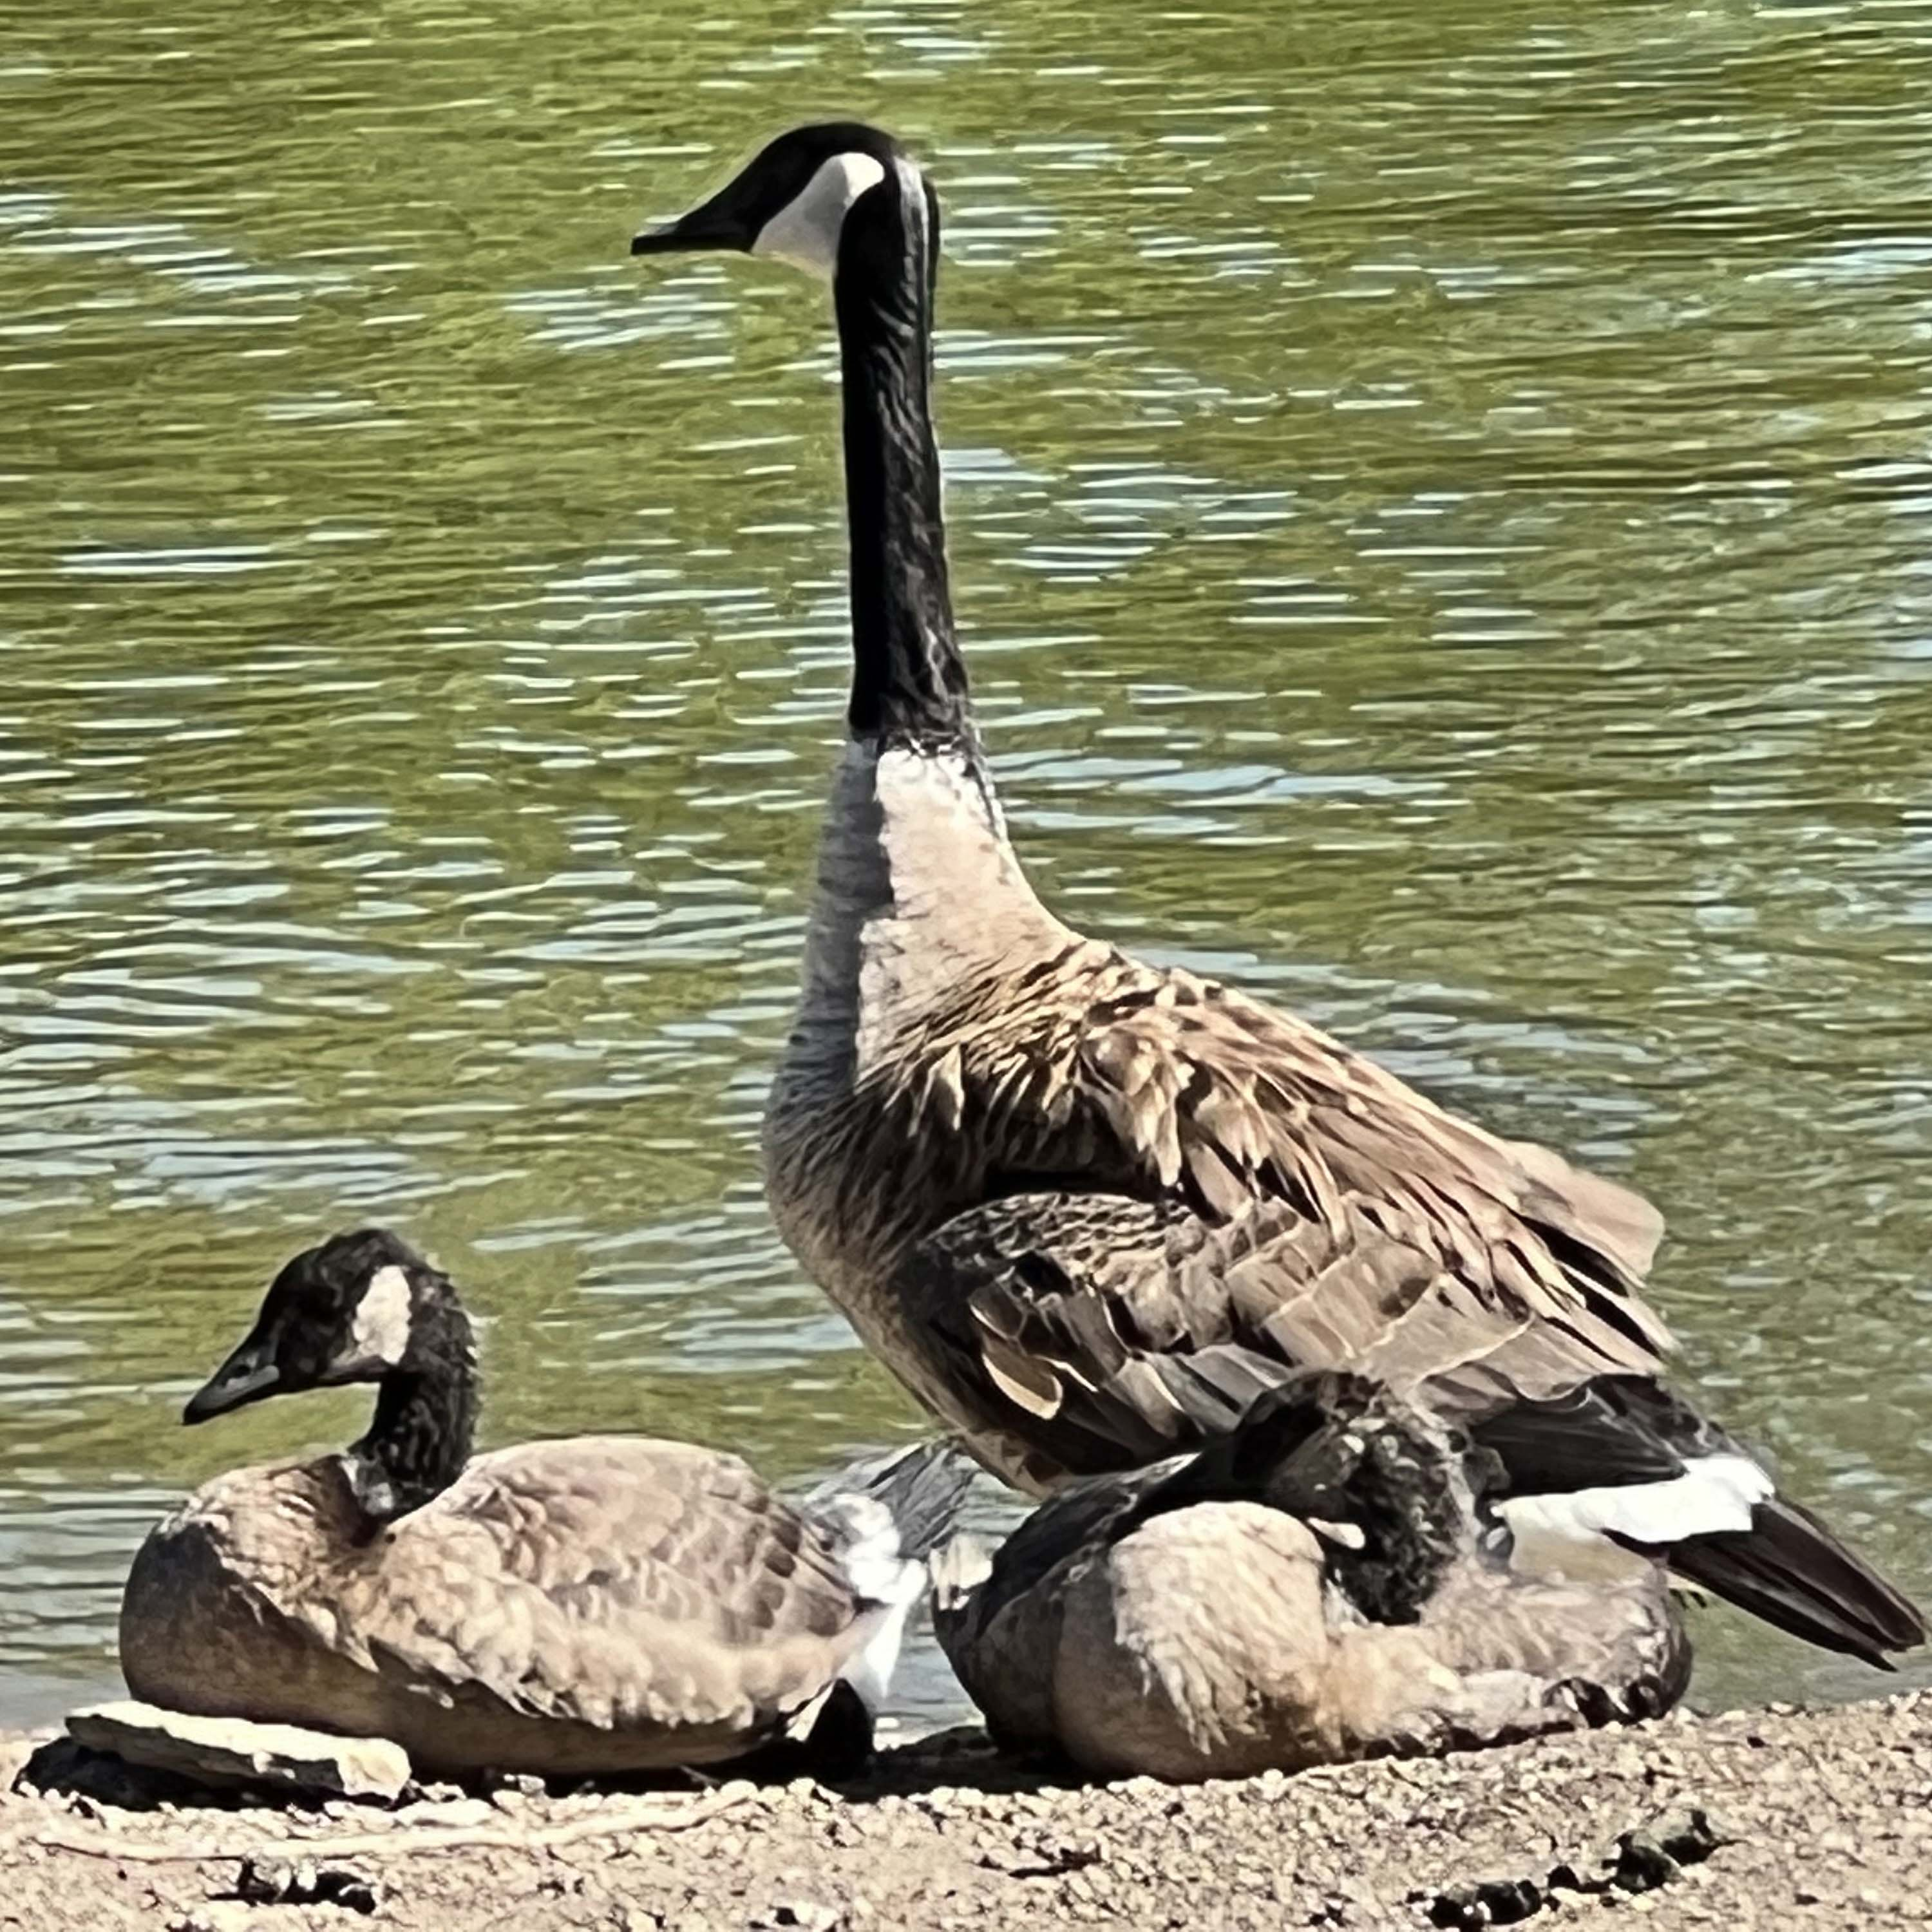 Marion volleyball was on a roll Saturday at its home tournament. The Warriors and Jayden May, spiking the ball, went 3-0 in pool play and rode that momentum all the way to a tournament win.